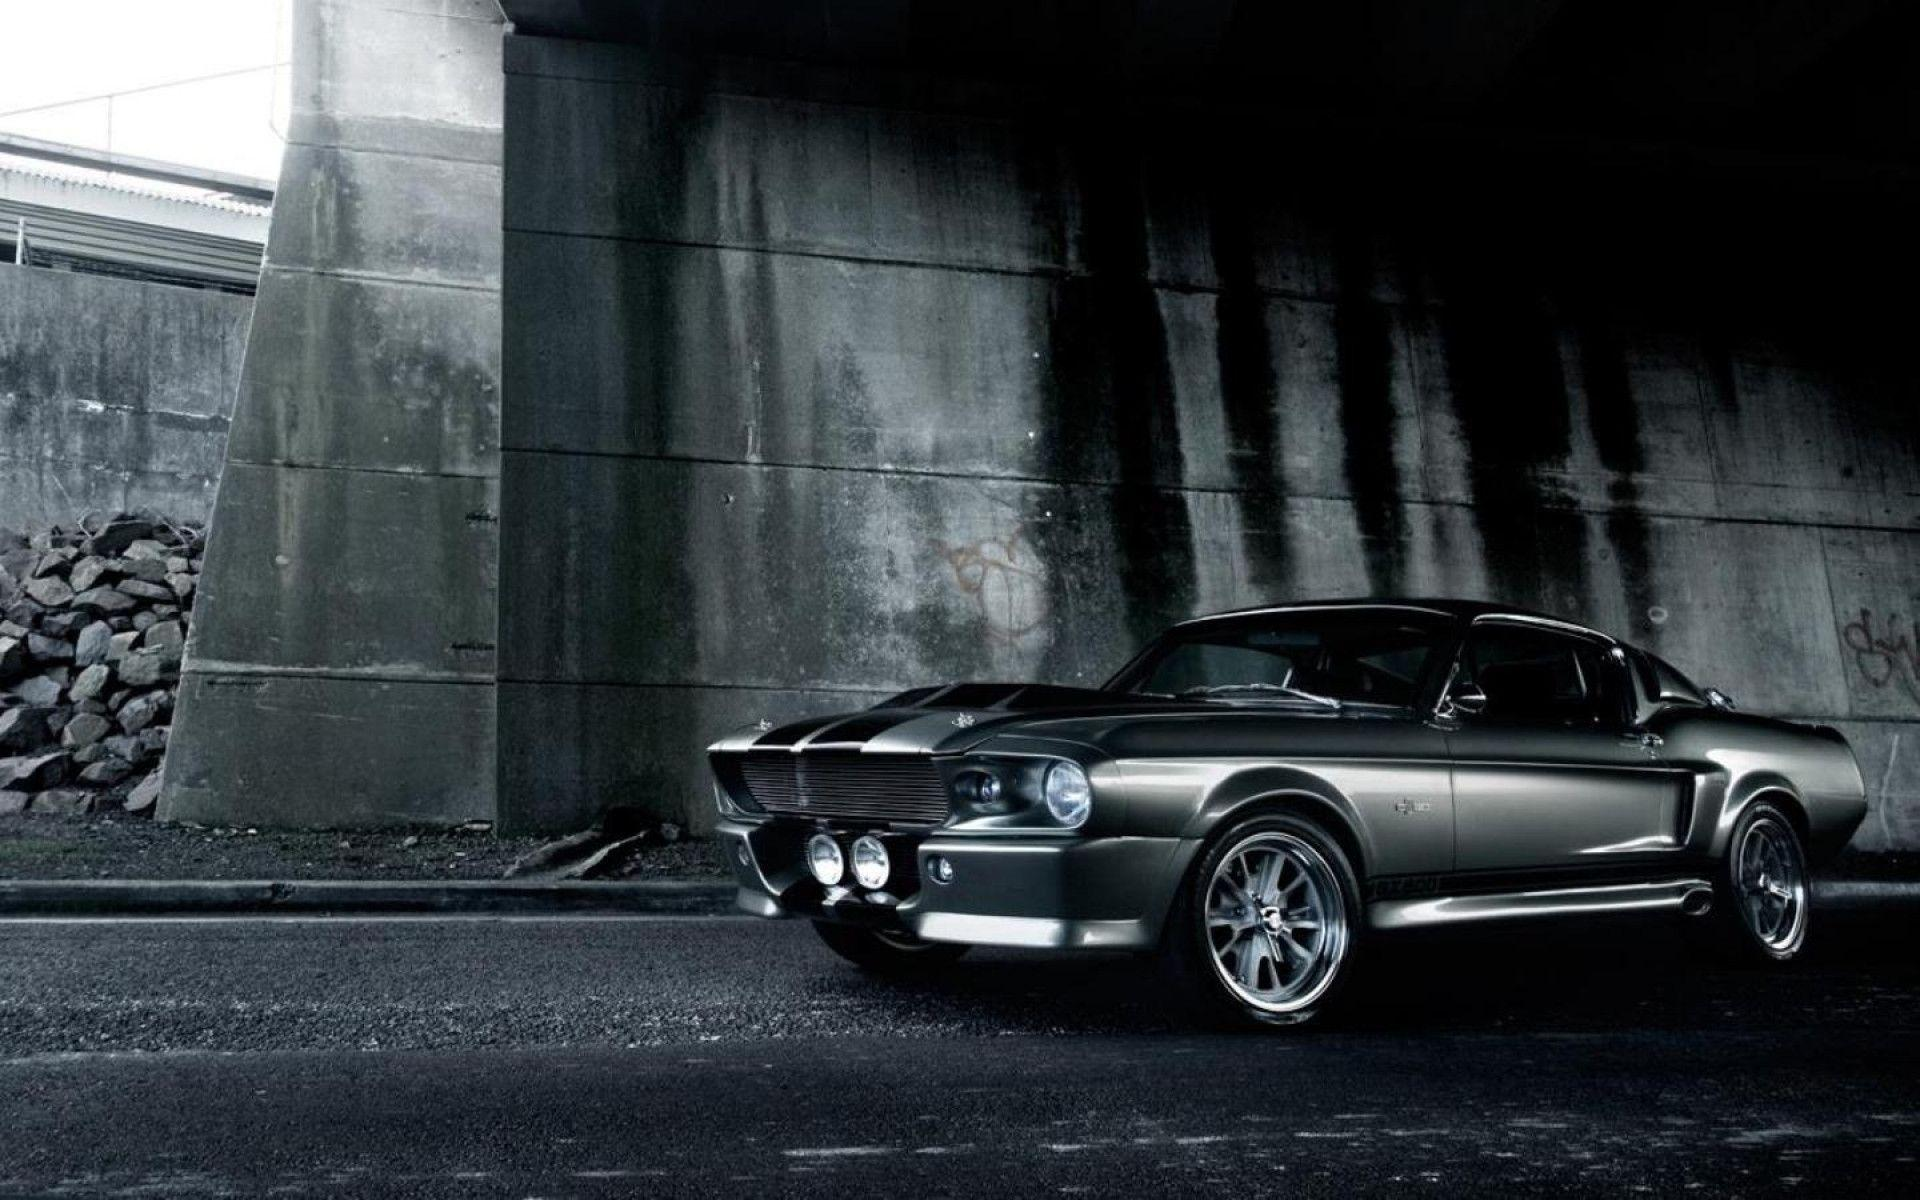 Ford Mustang Shelby Gt500 Wallpaper 1967